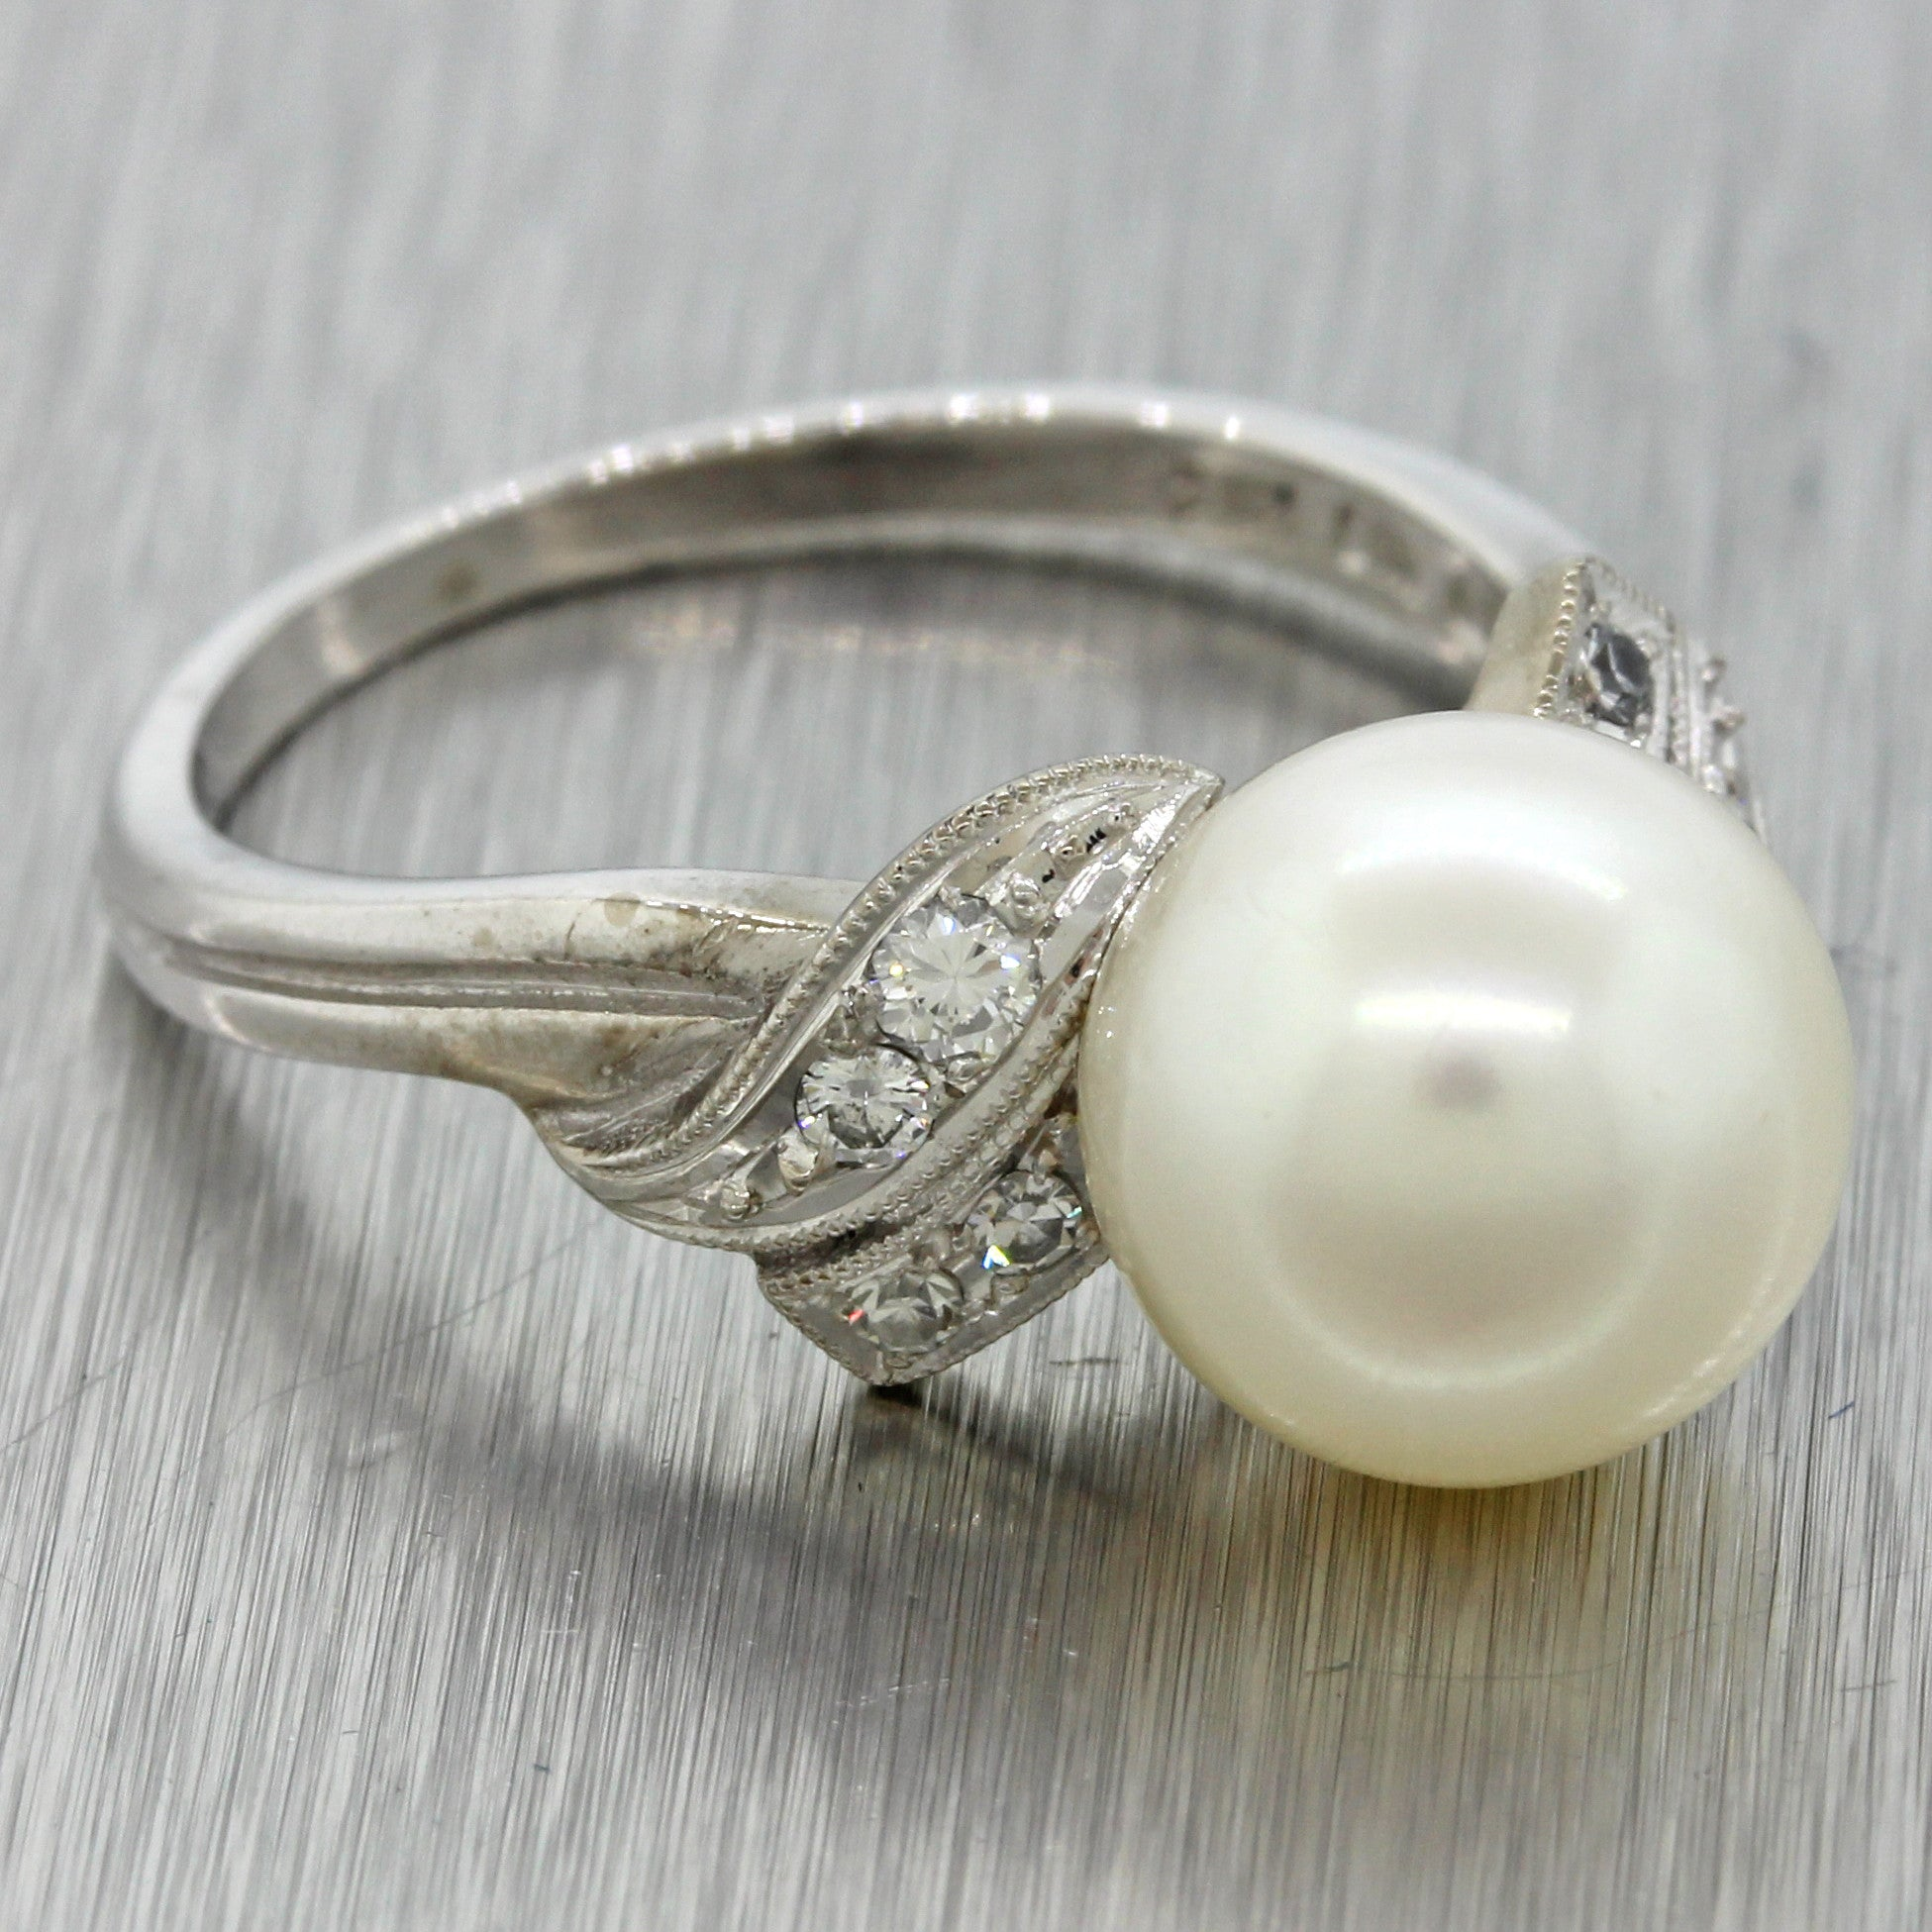 Authentic Mikimoto 14k White Gold 9.5mm Pearl Diamond Cocktail Ring